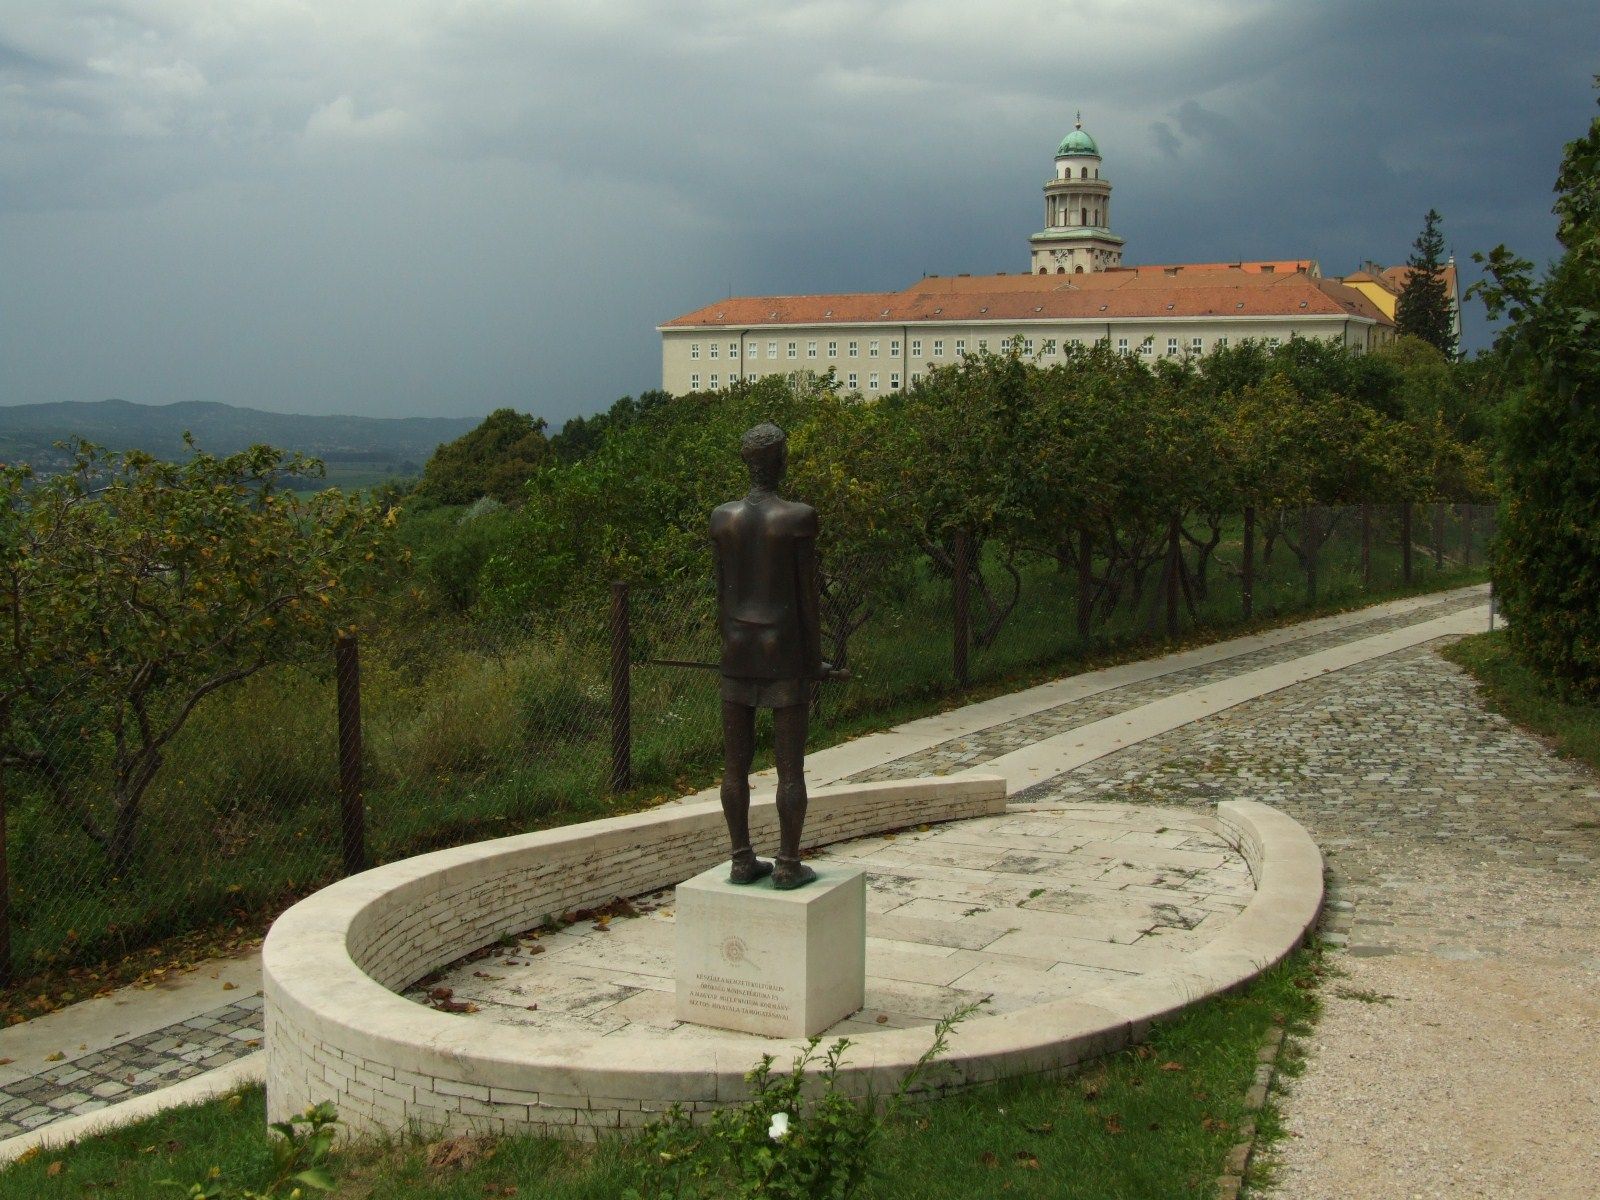 Pannonhalma Archabbey, Hungary, Europe, Statue and the abbey